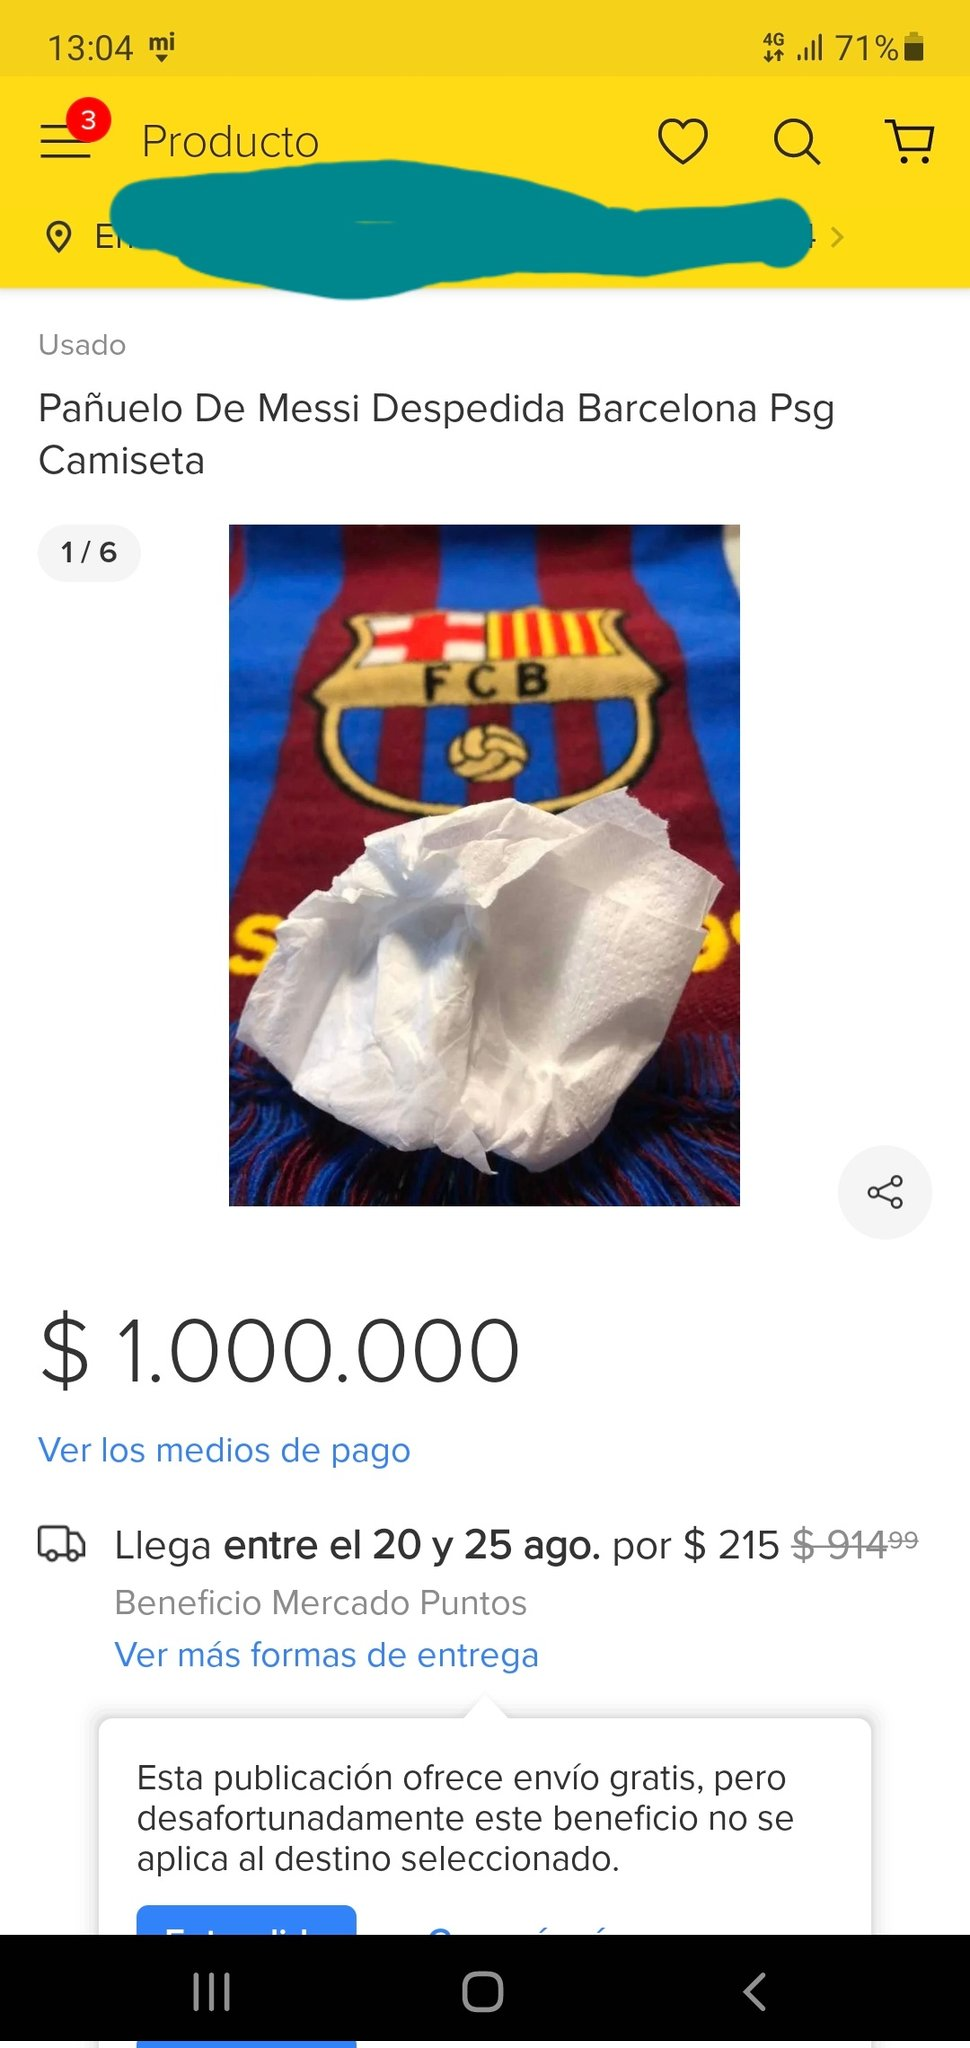 Lionel Messi's used tissue from press conference selling for $1.3M online